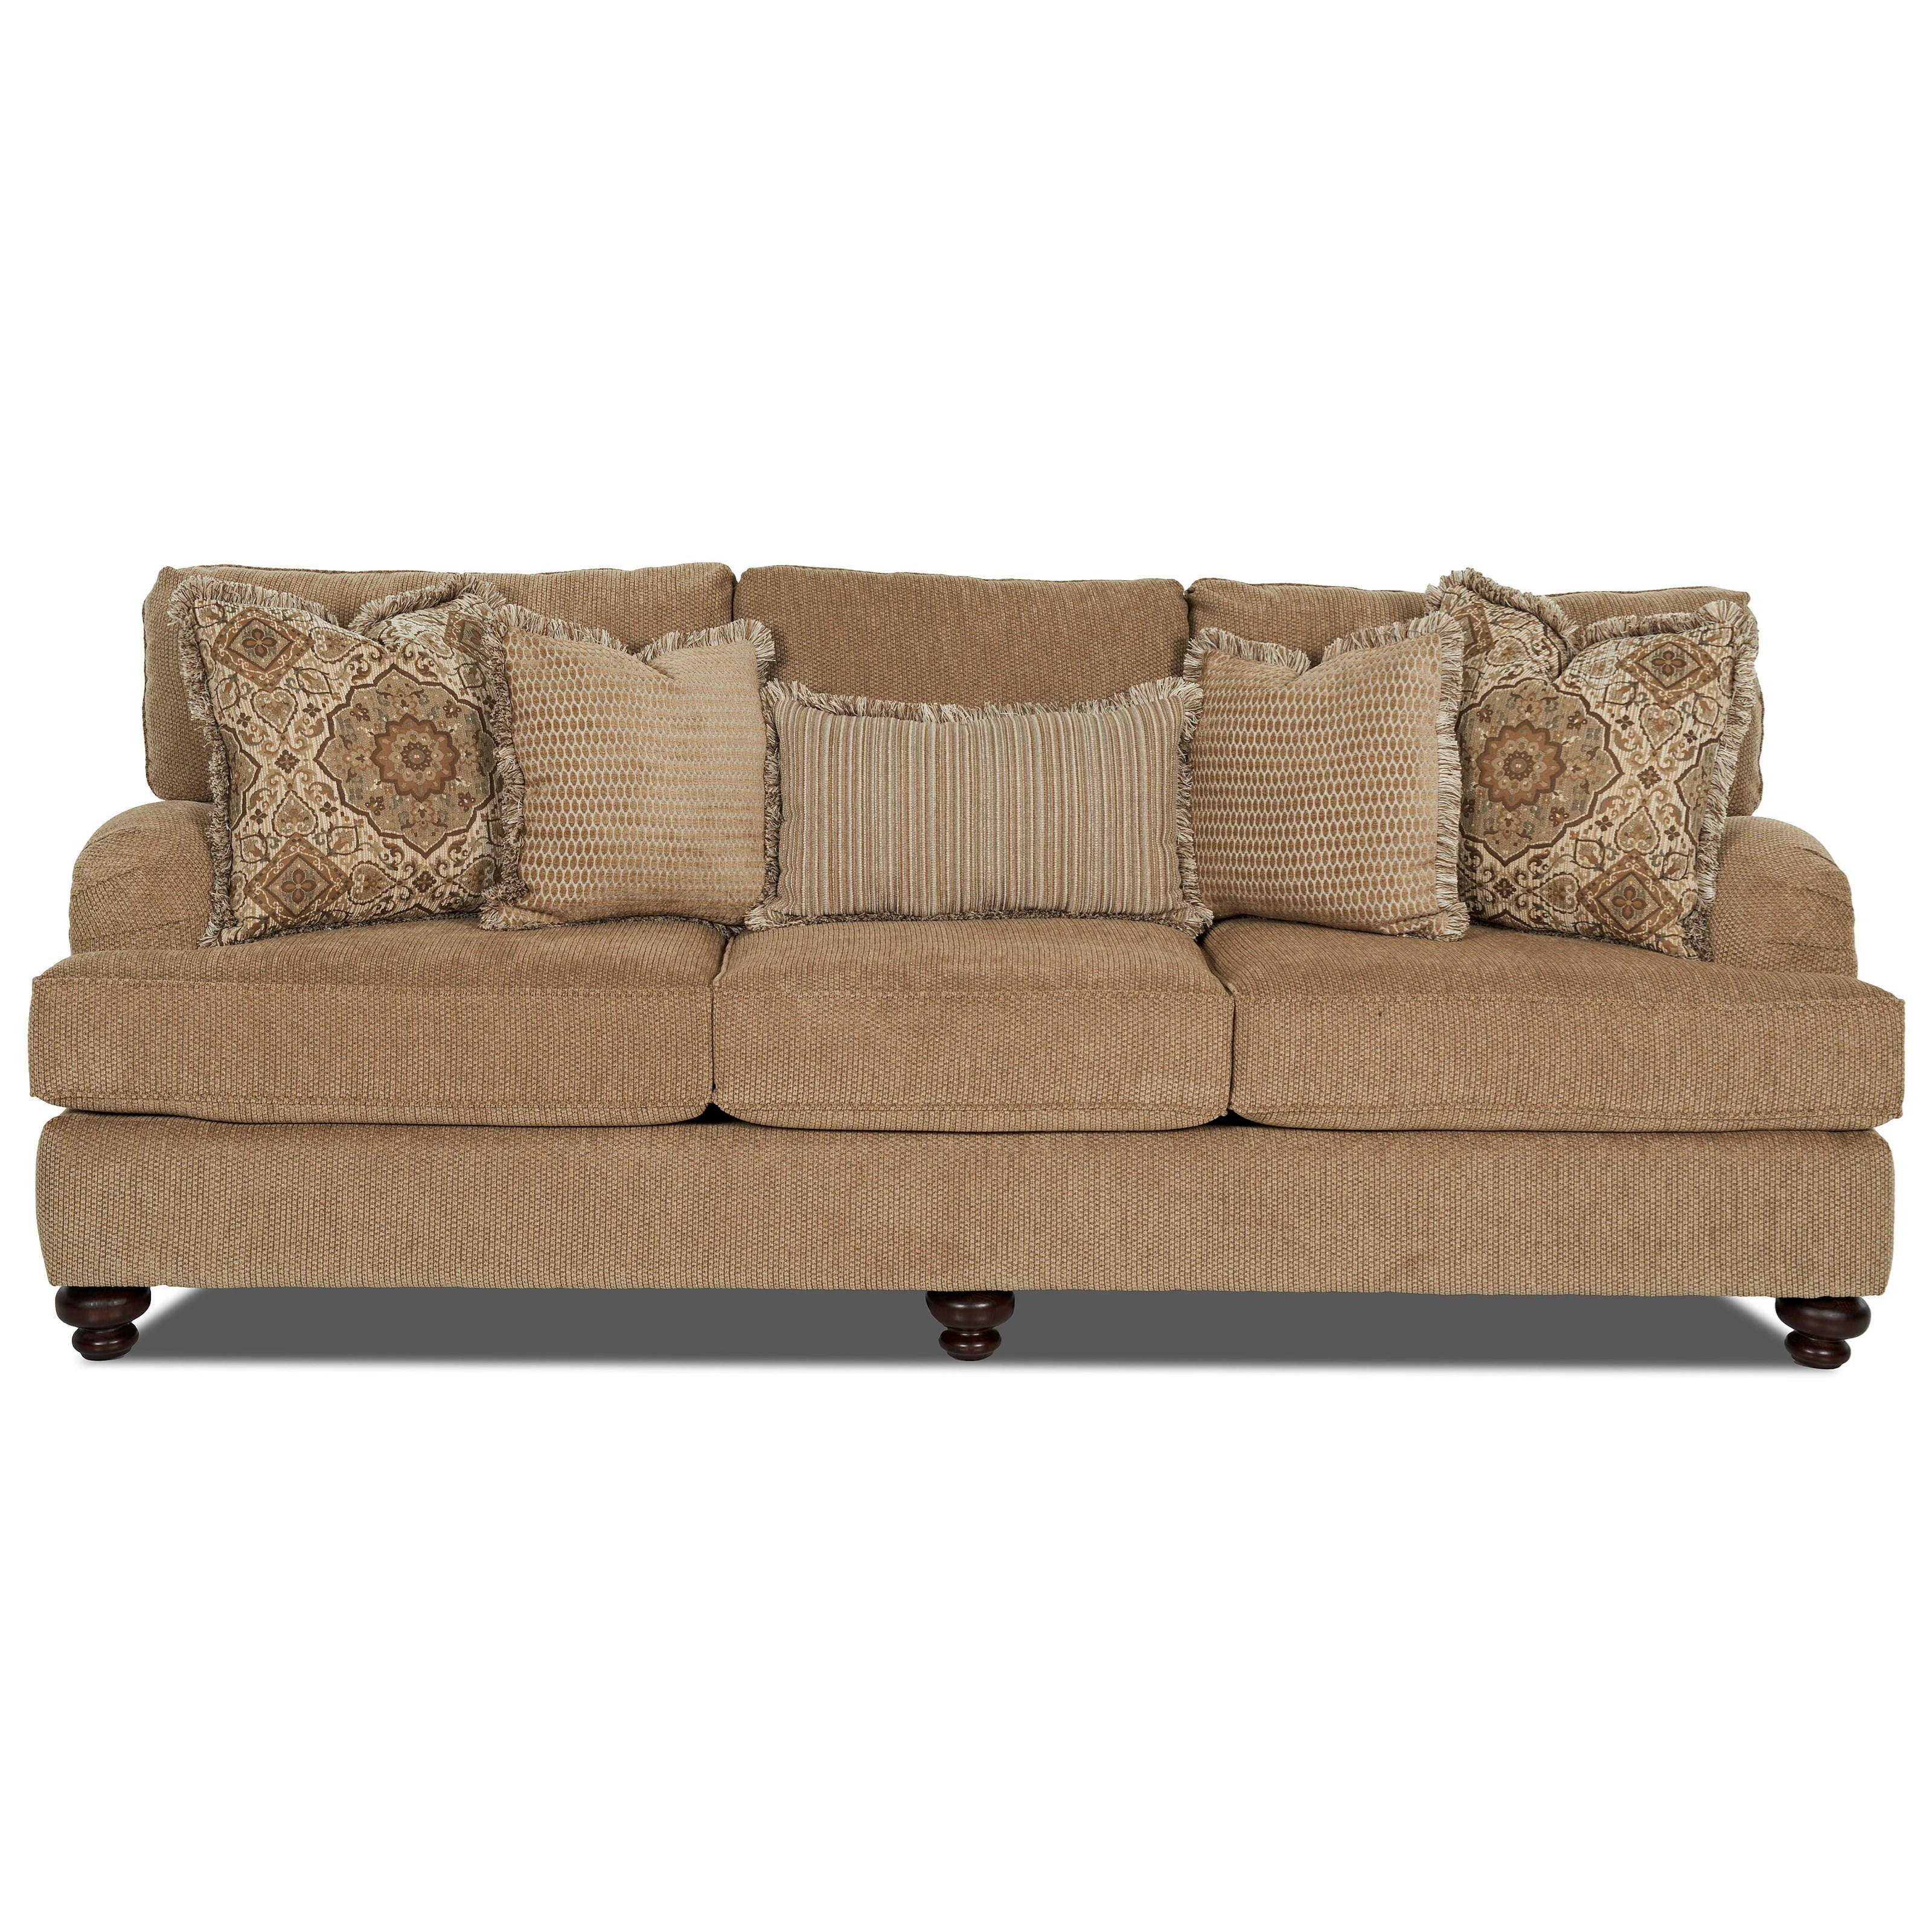 Klaussner Declan  Traditional Sofa - Item Number: OK42200F S Frenzy Cashmere